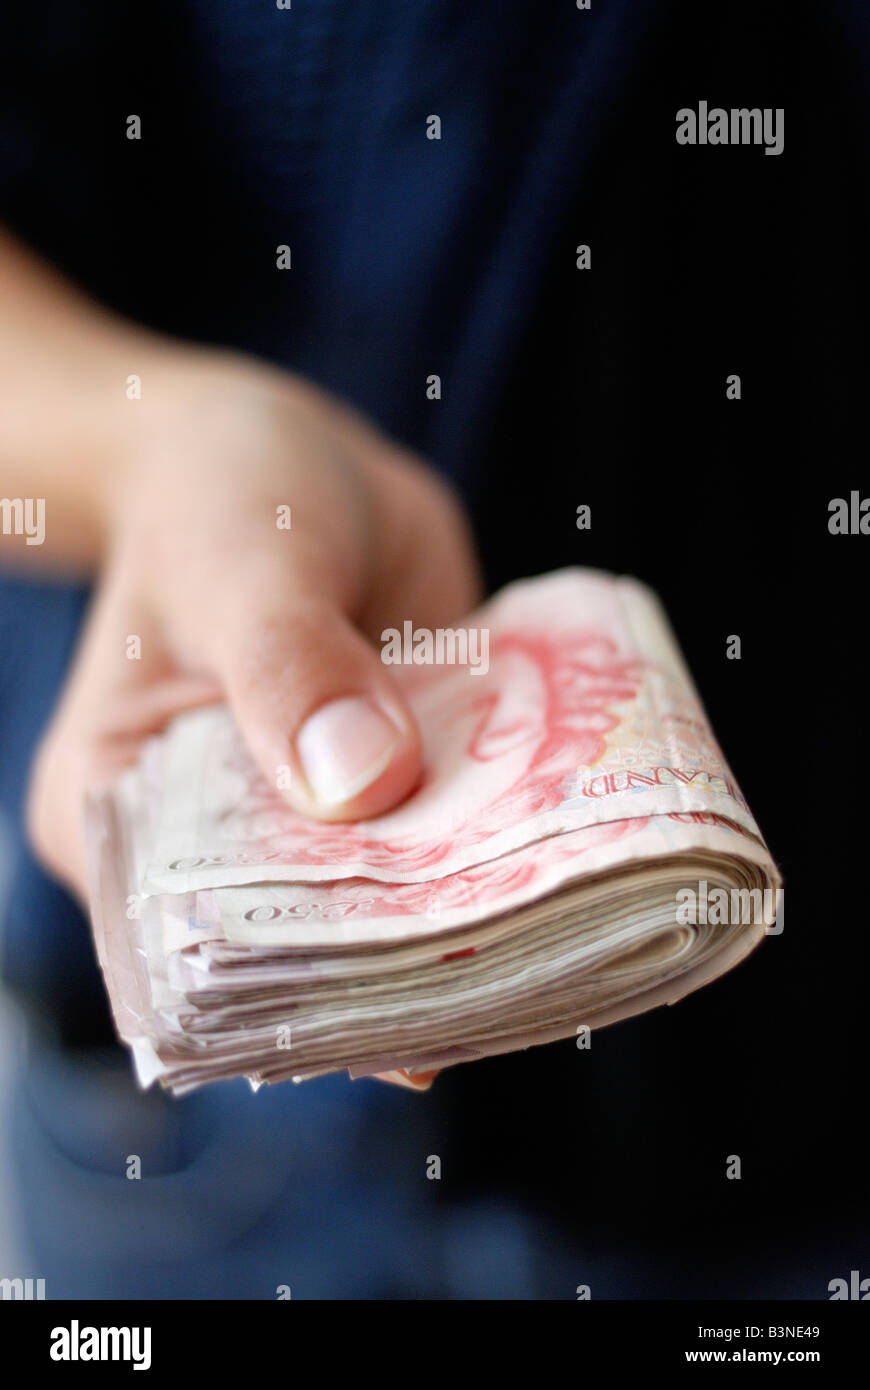 UK currency person handing a wad of fifty pound notes close up - Stock Image